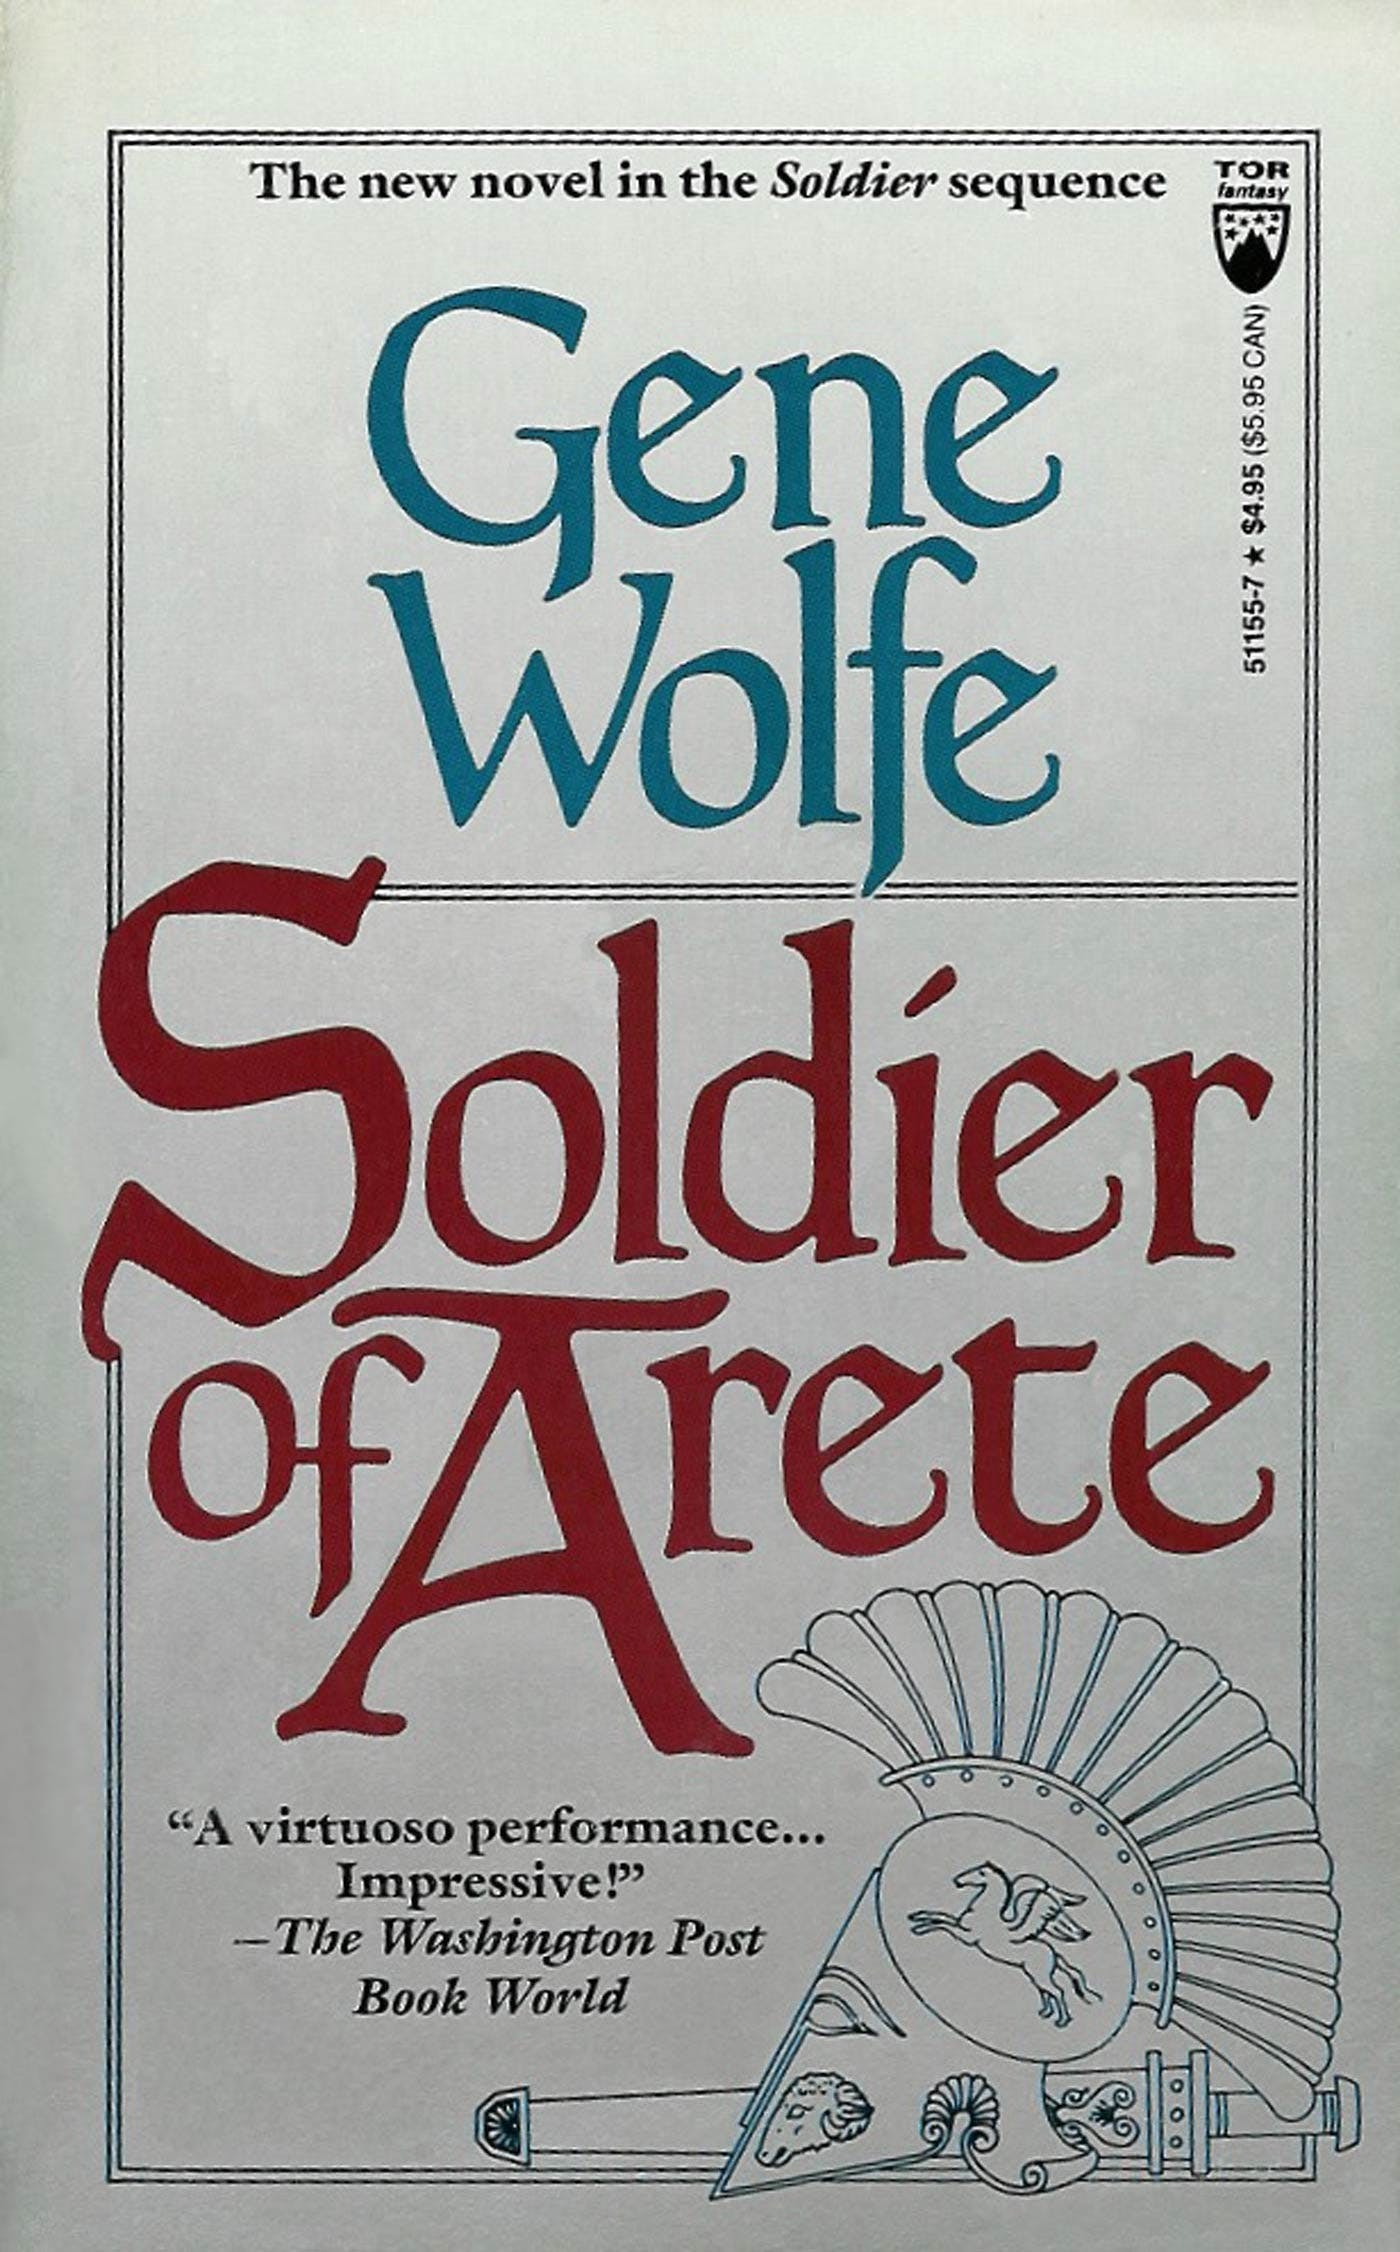 Image of Soldier of Arete